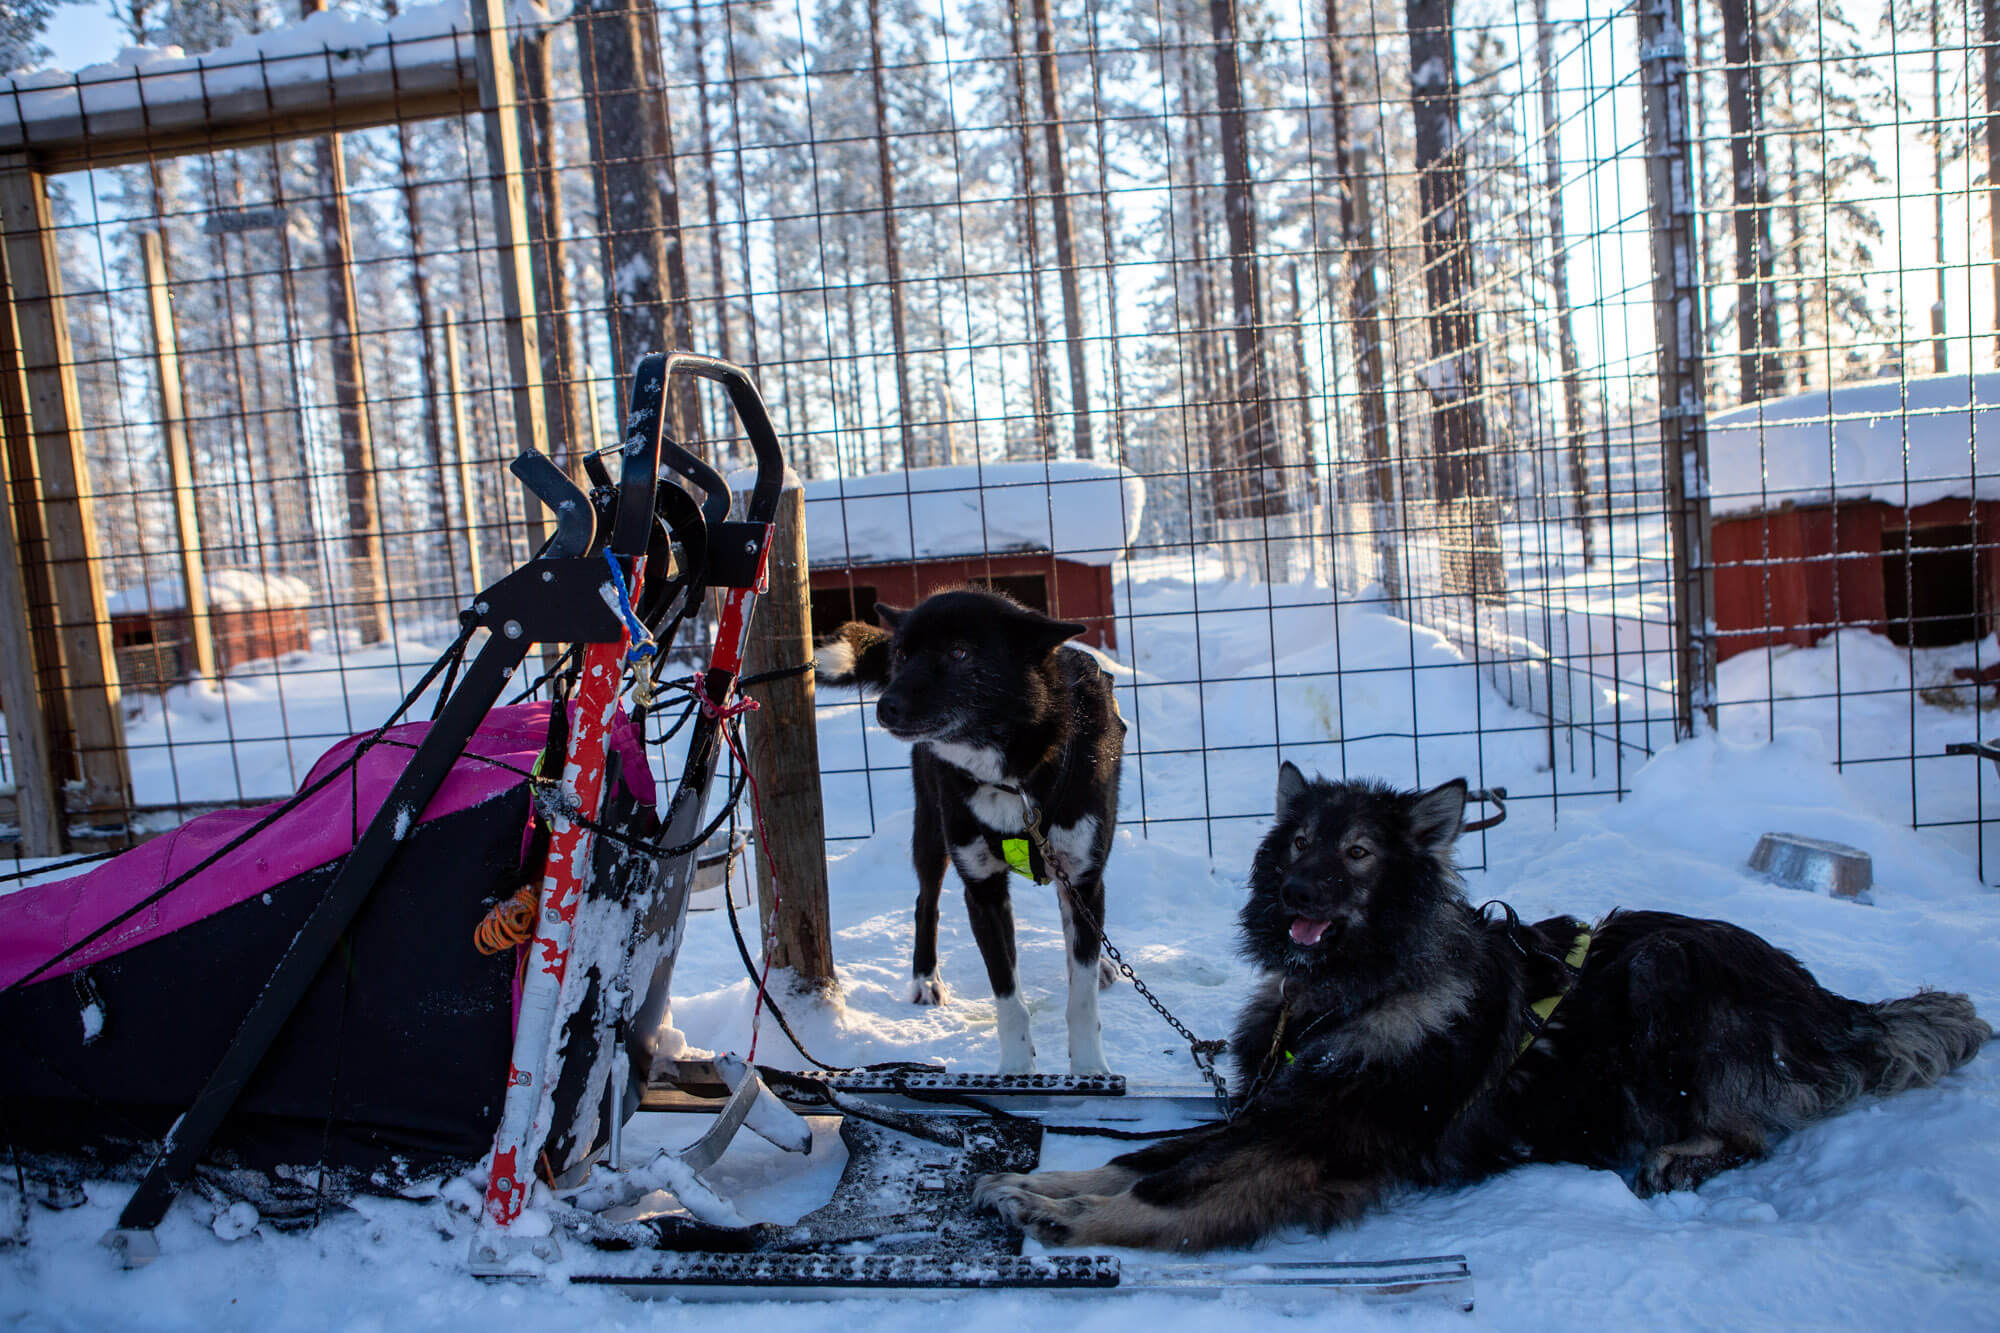 Sled dogs patiently waiting for the start of the trip in Swedish Lapland